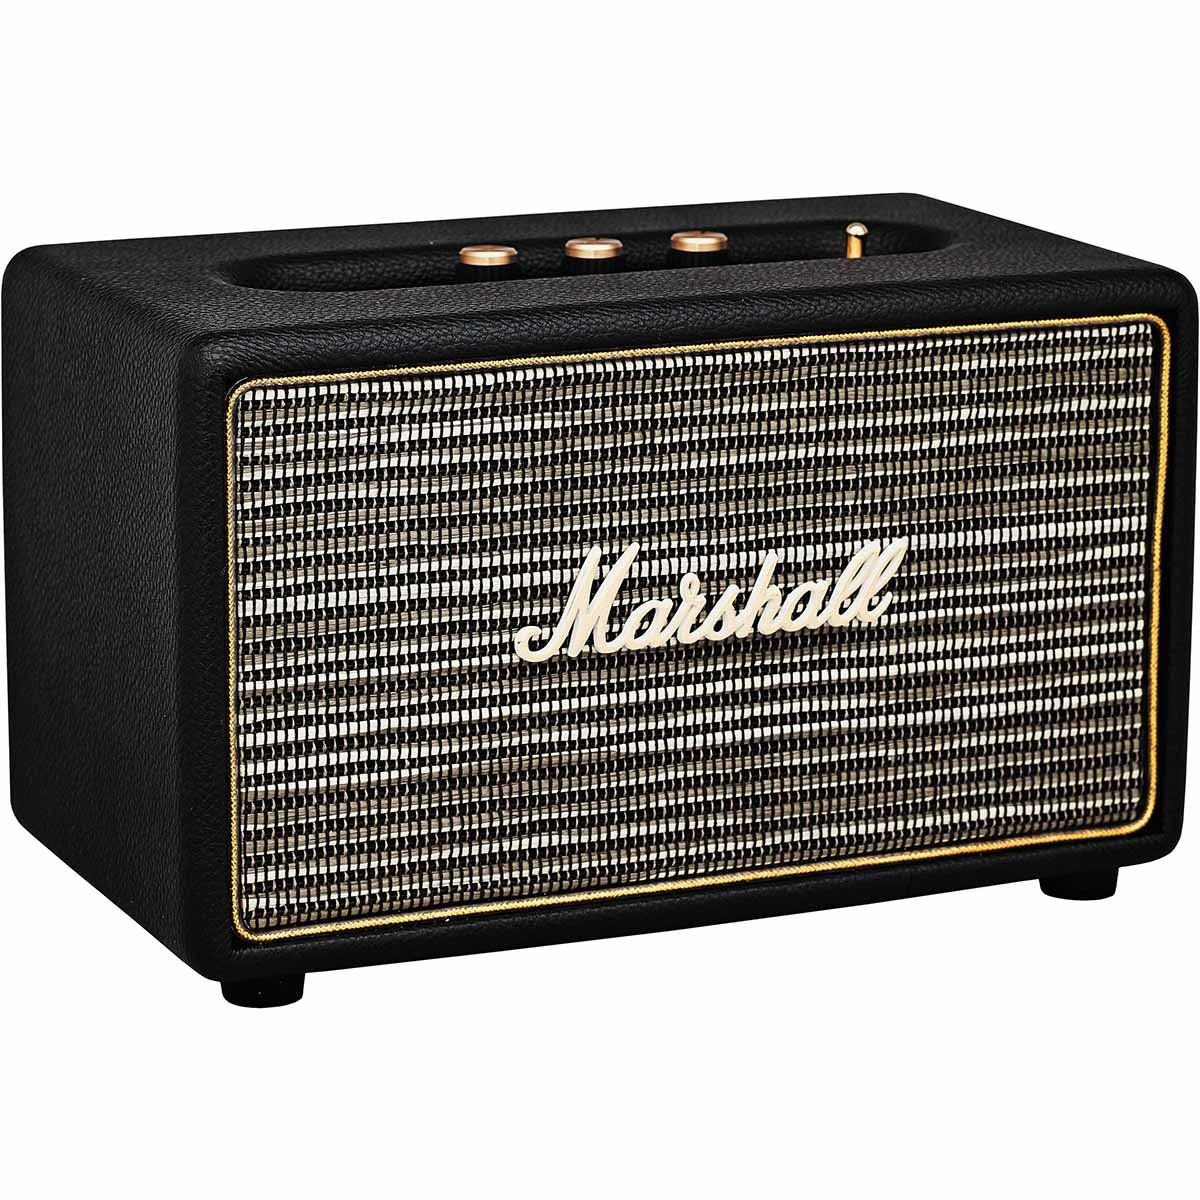 Marshall Acton Black Caixa de Som Acton-Black Ativa 41W Acústica com Bluetooth